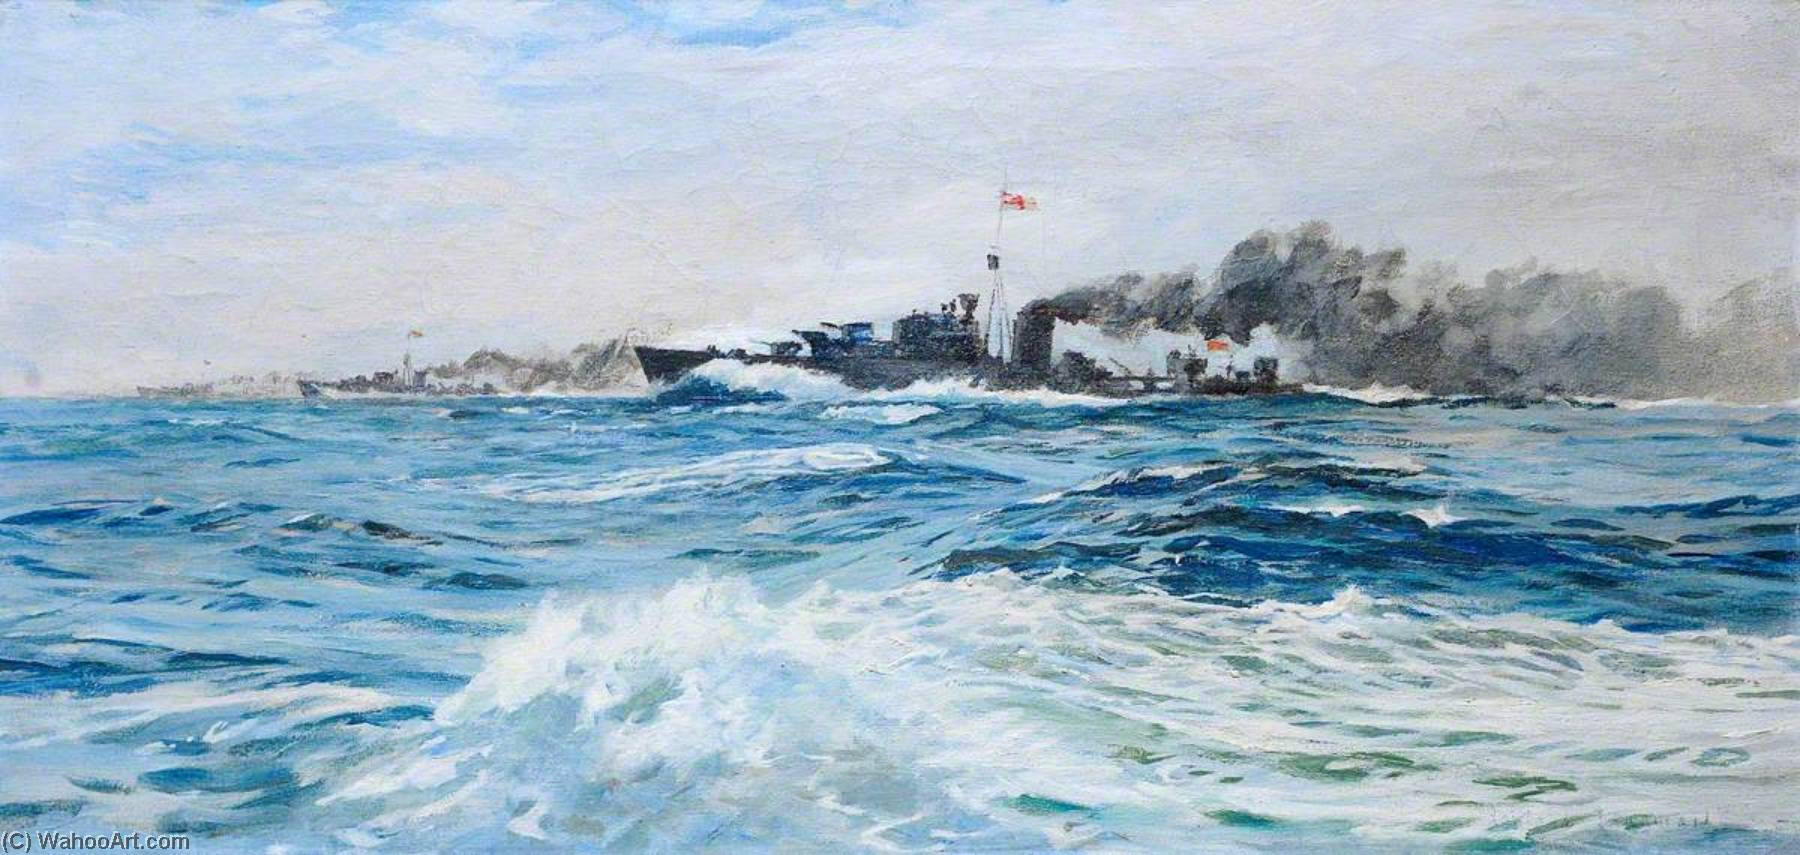 Destroyer Attacking the 'Littorio', Oil On Canvas by Rowland Langmaid